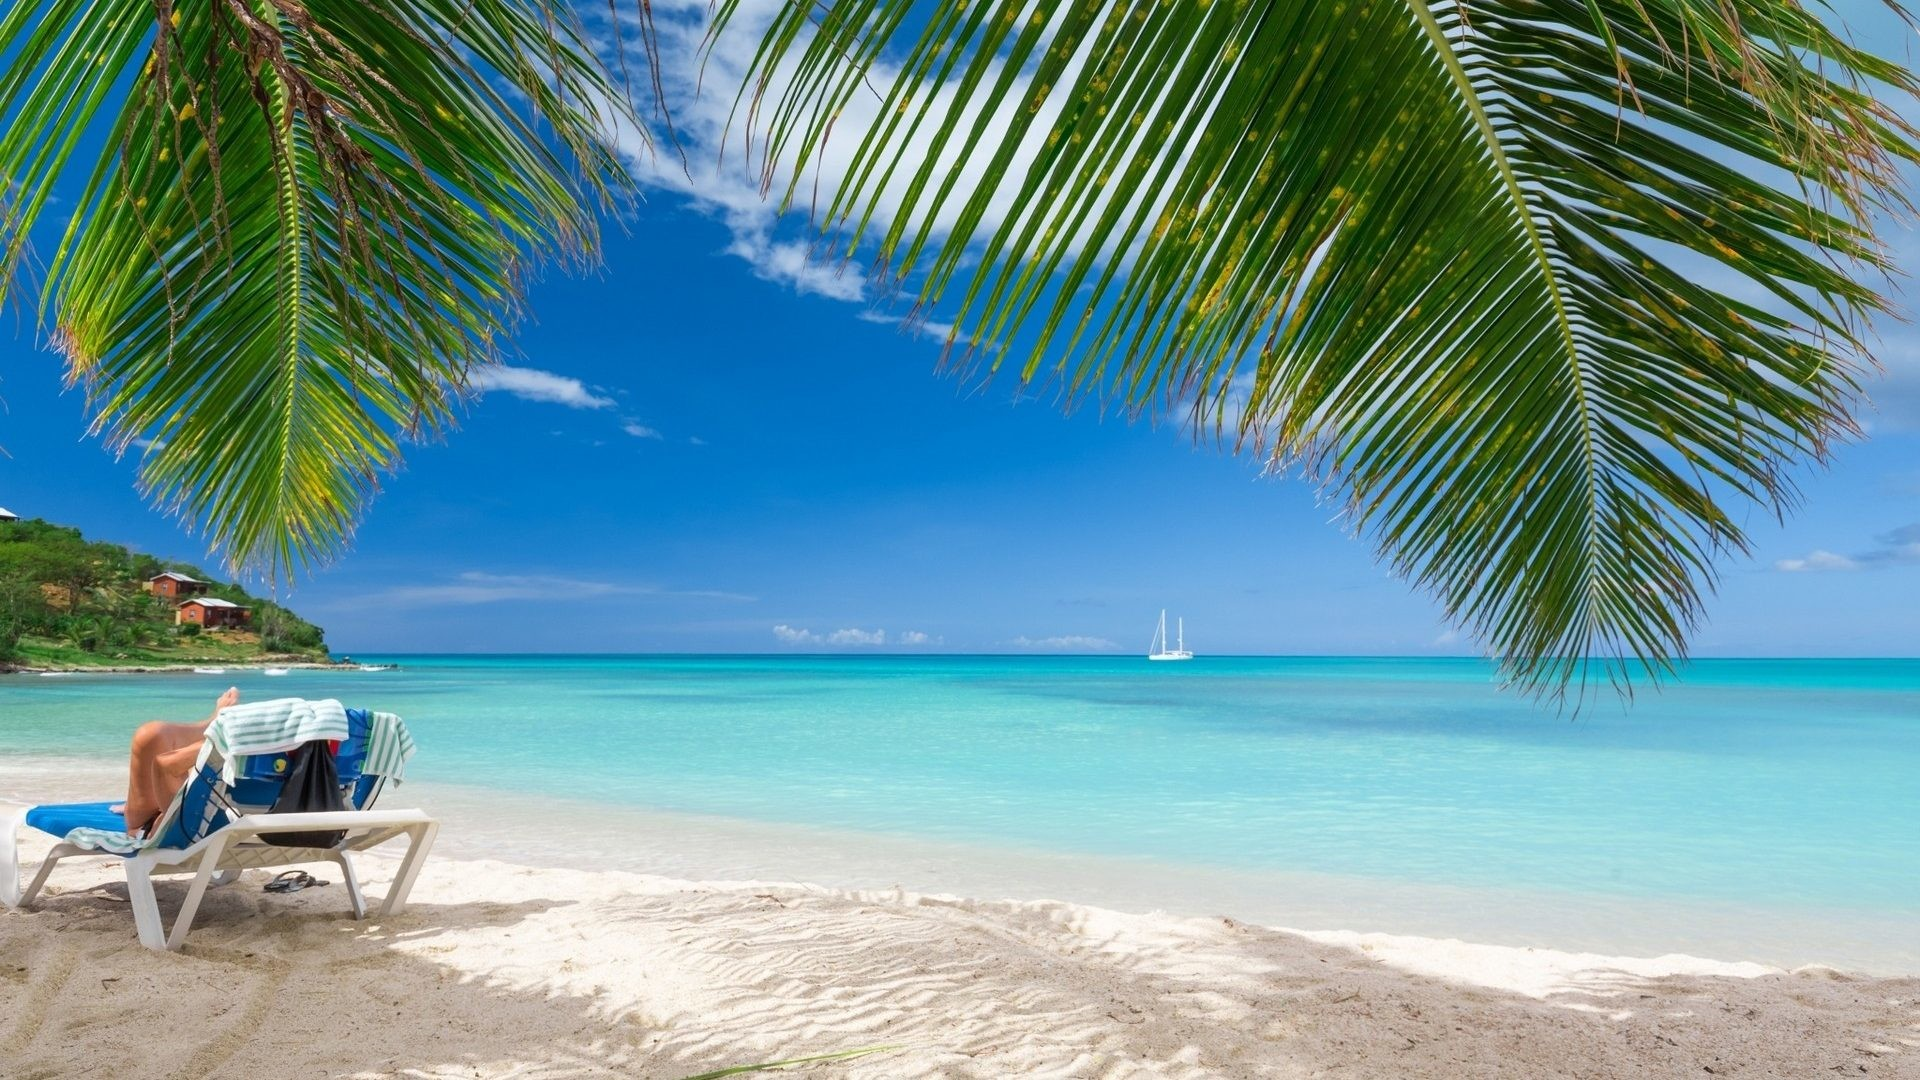 Caribbean beach pictures wallpaper 70 images for Beach wallpaper 1920x1080